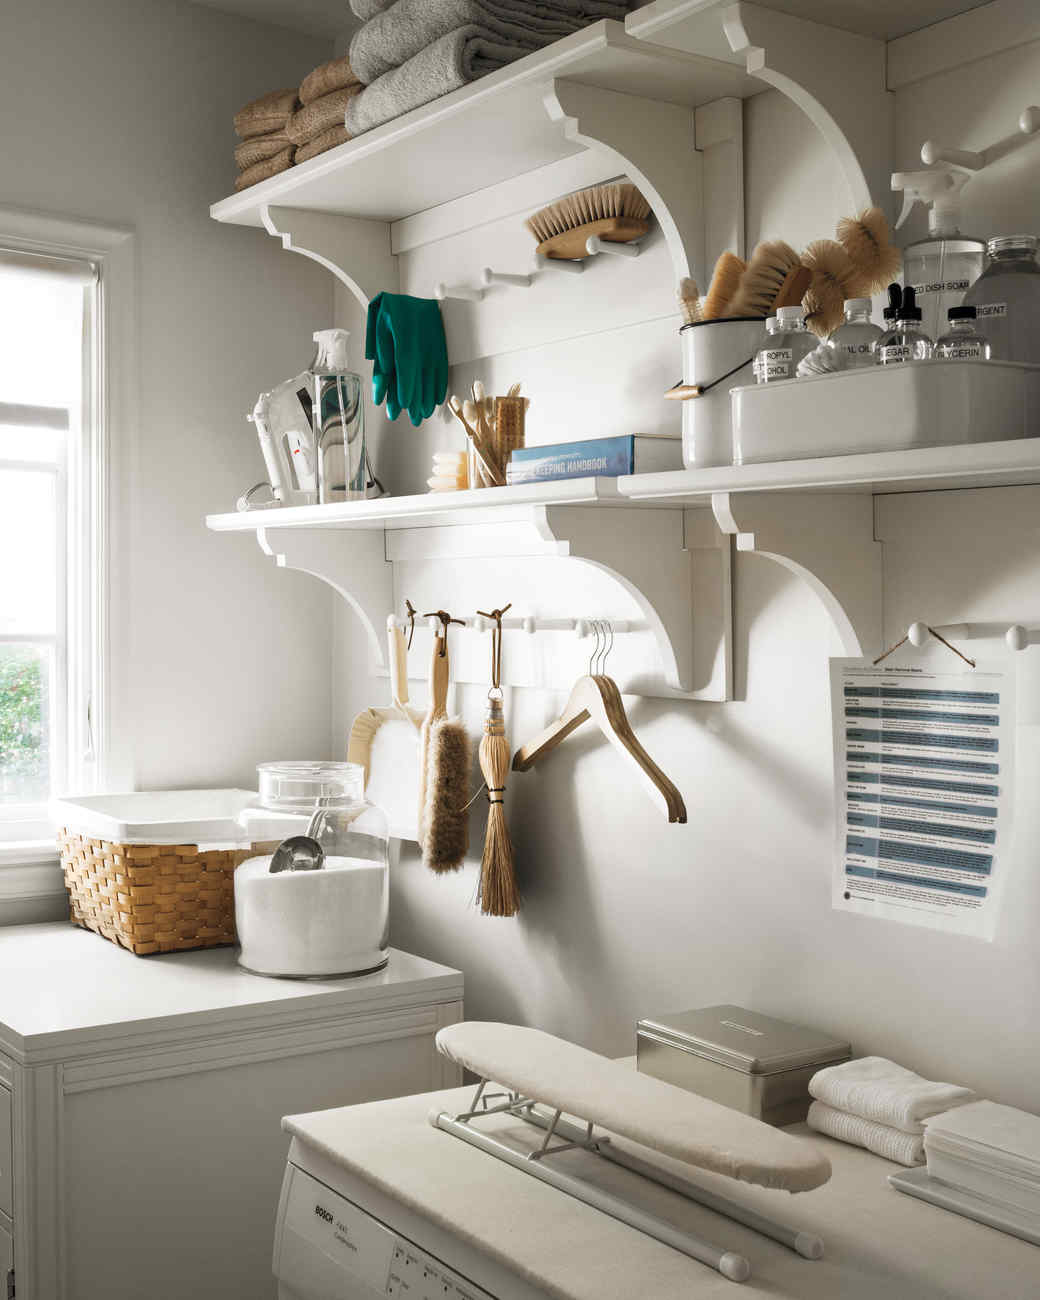 Martha's Laundry Room Redo: Tips to Organize a Small Space ...